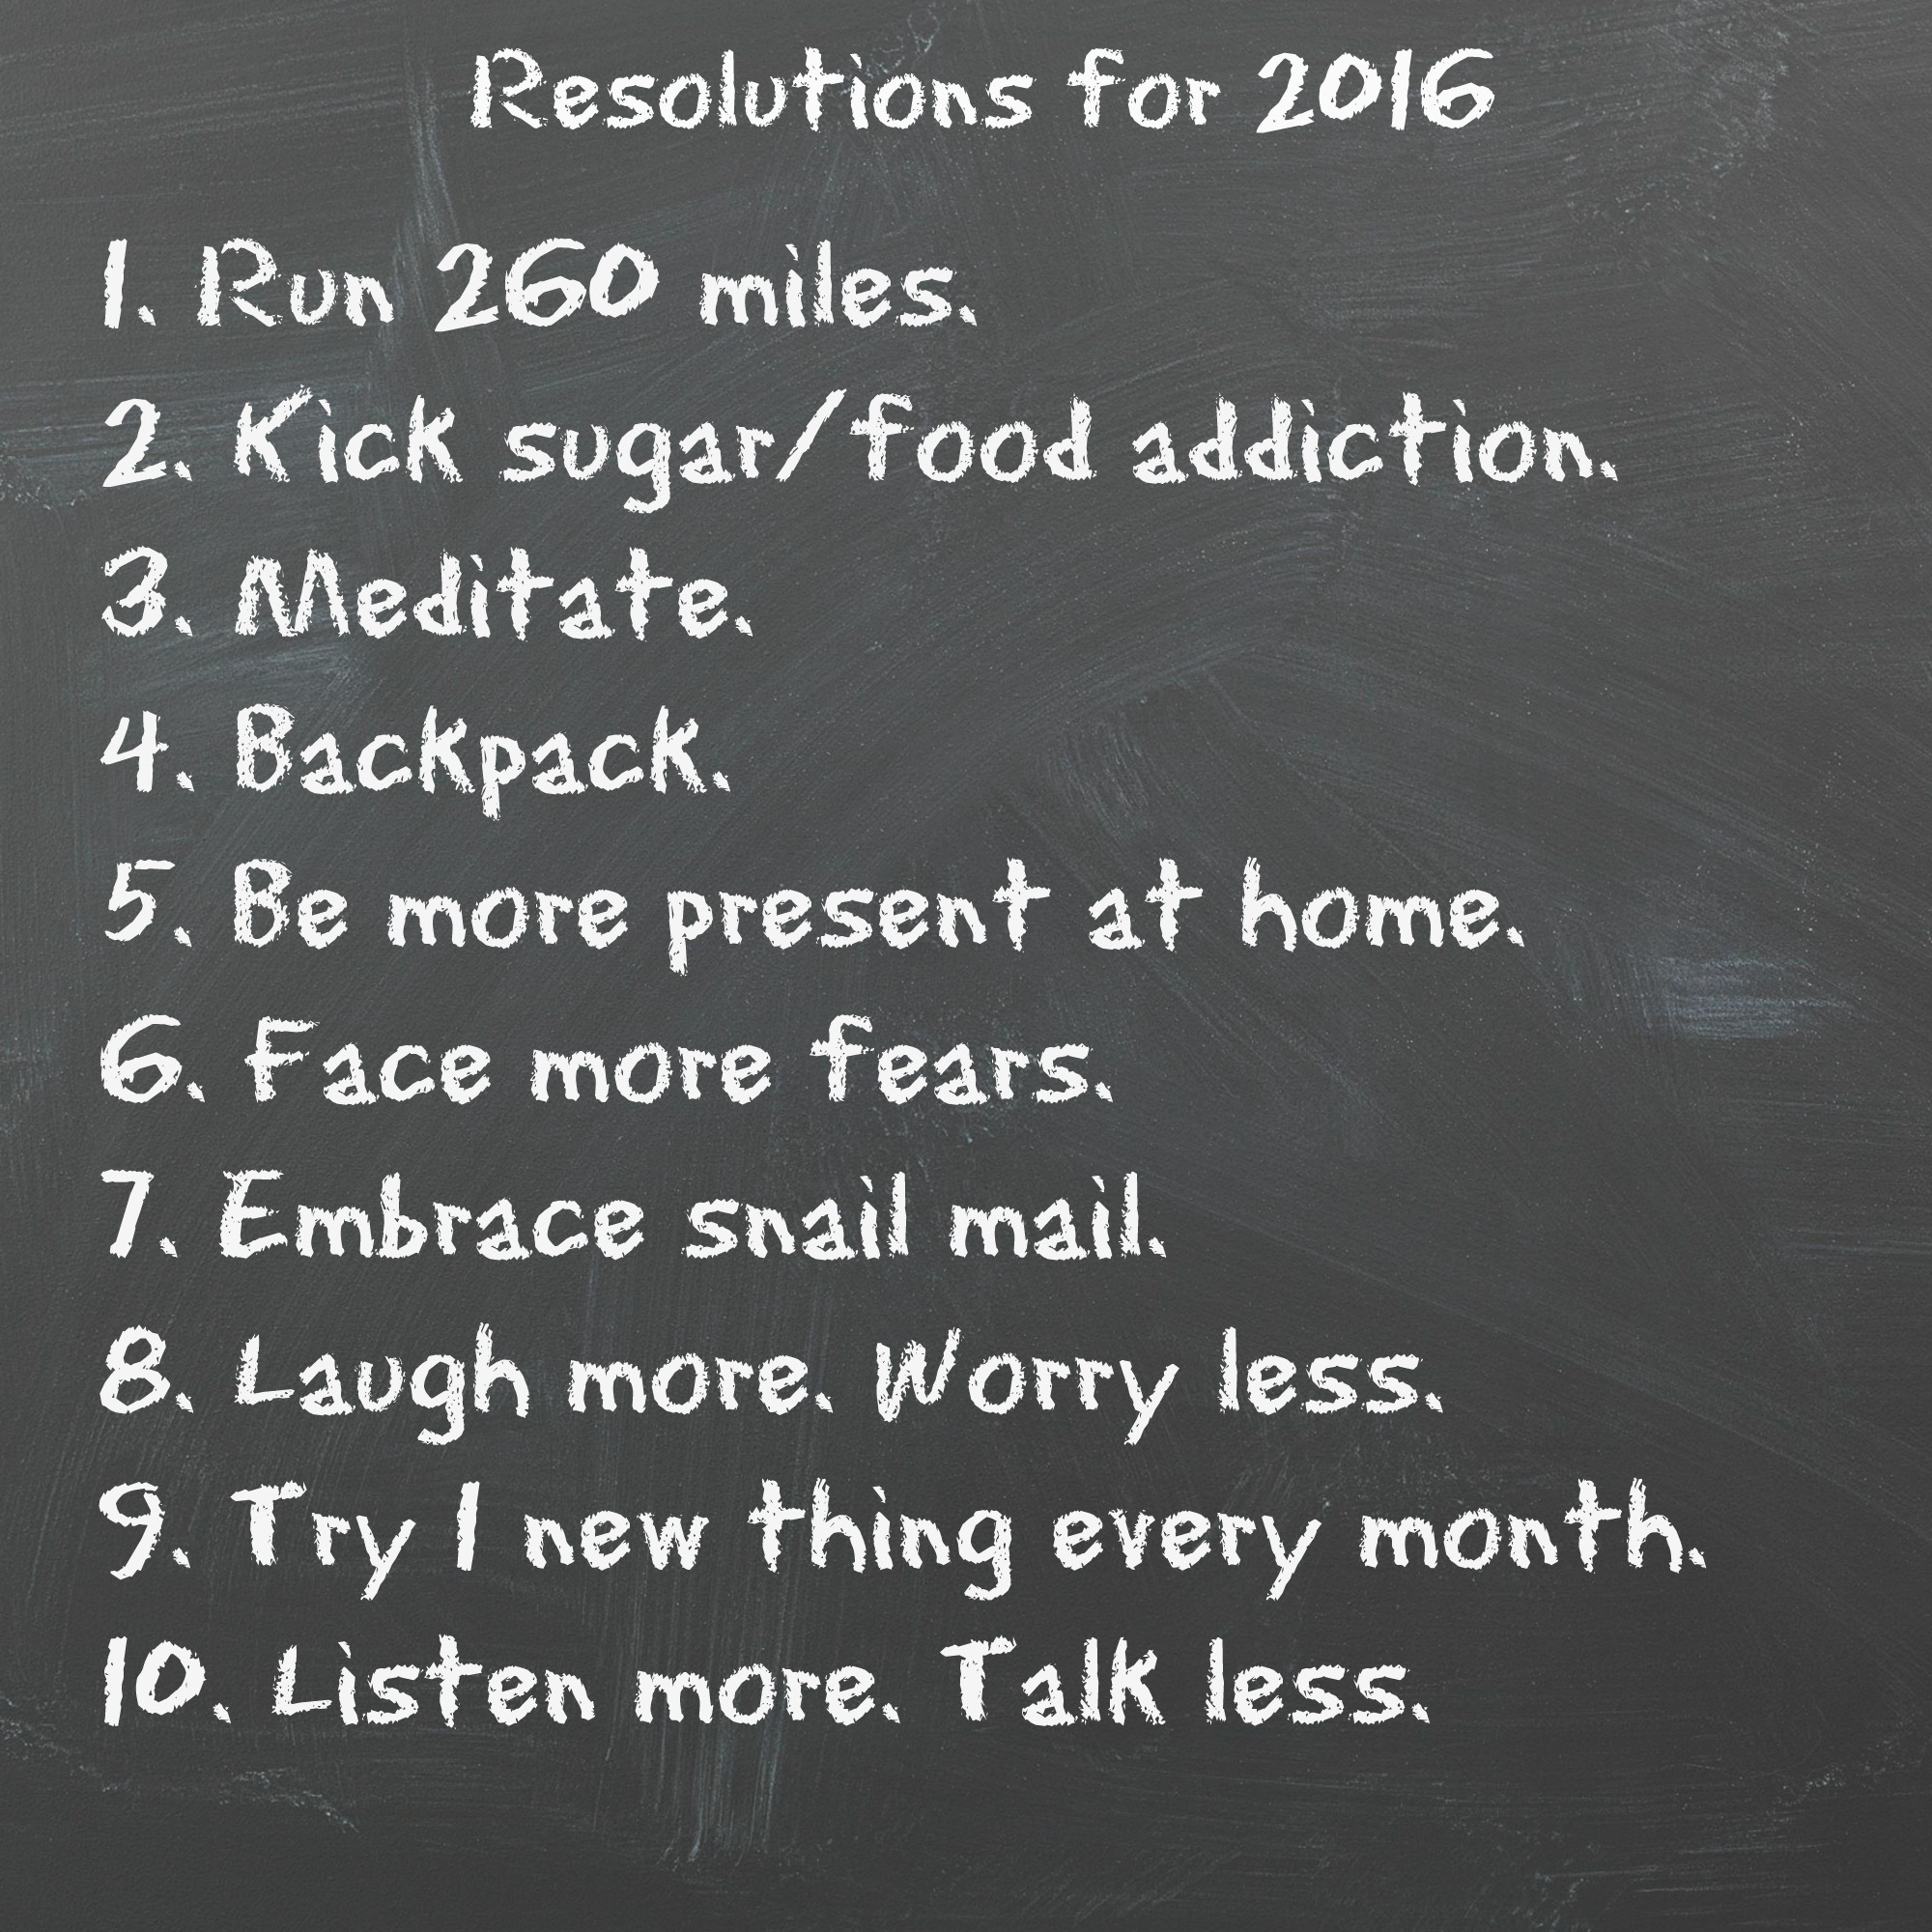 Resolutions16